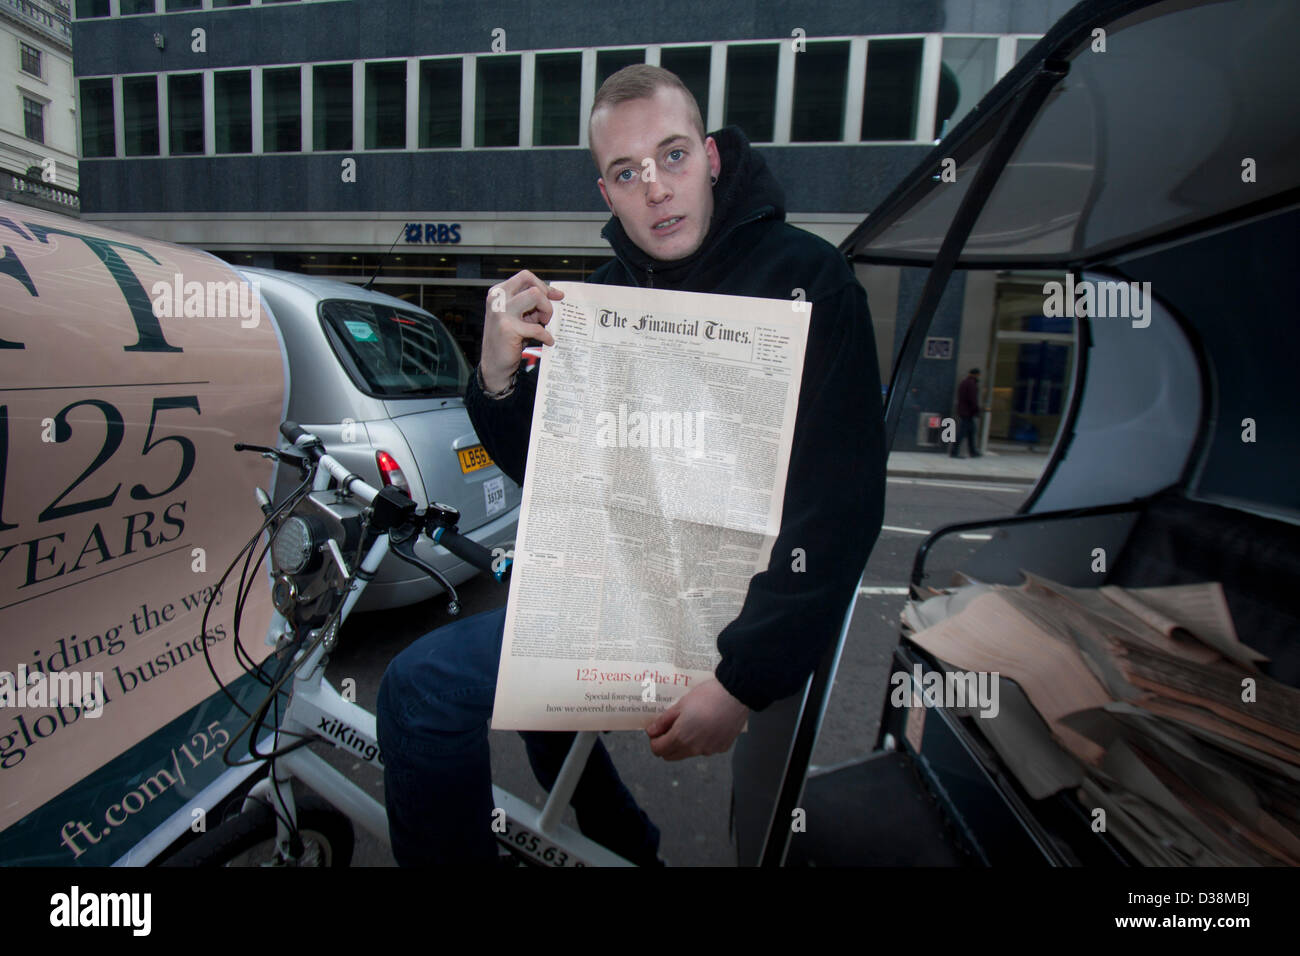 London, UK. 13th February 2013. A newspaper vendor on a rickshaw holds a  copy of the first Financial Times edition - Stock Image